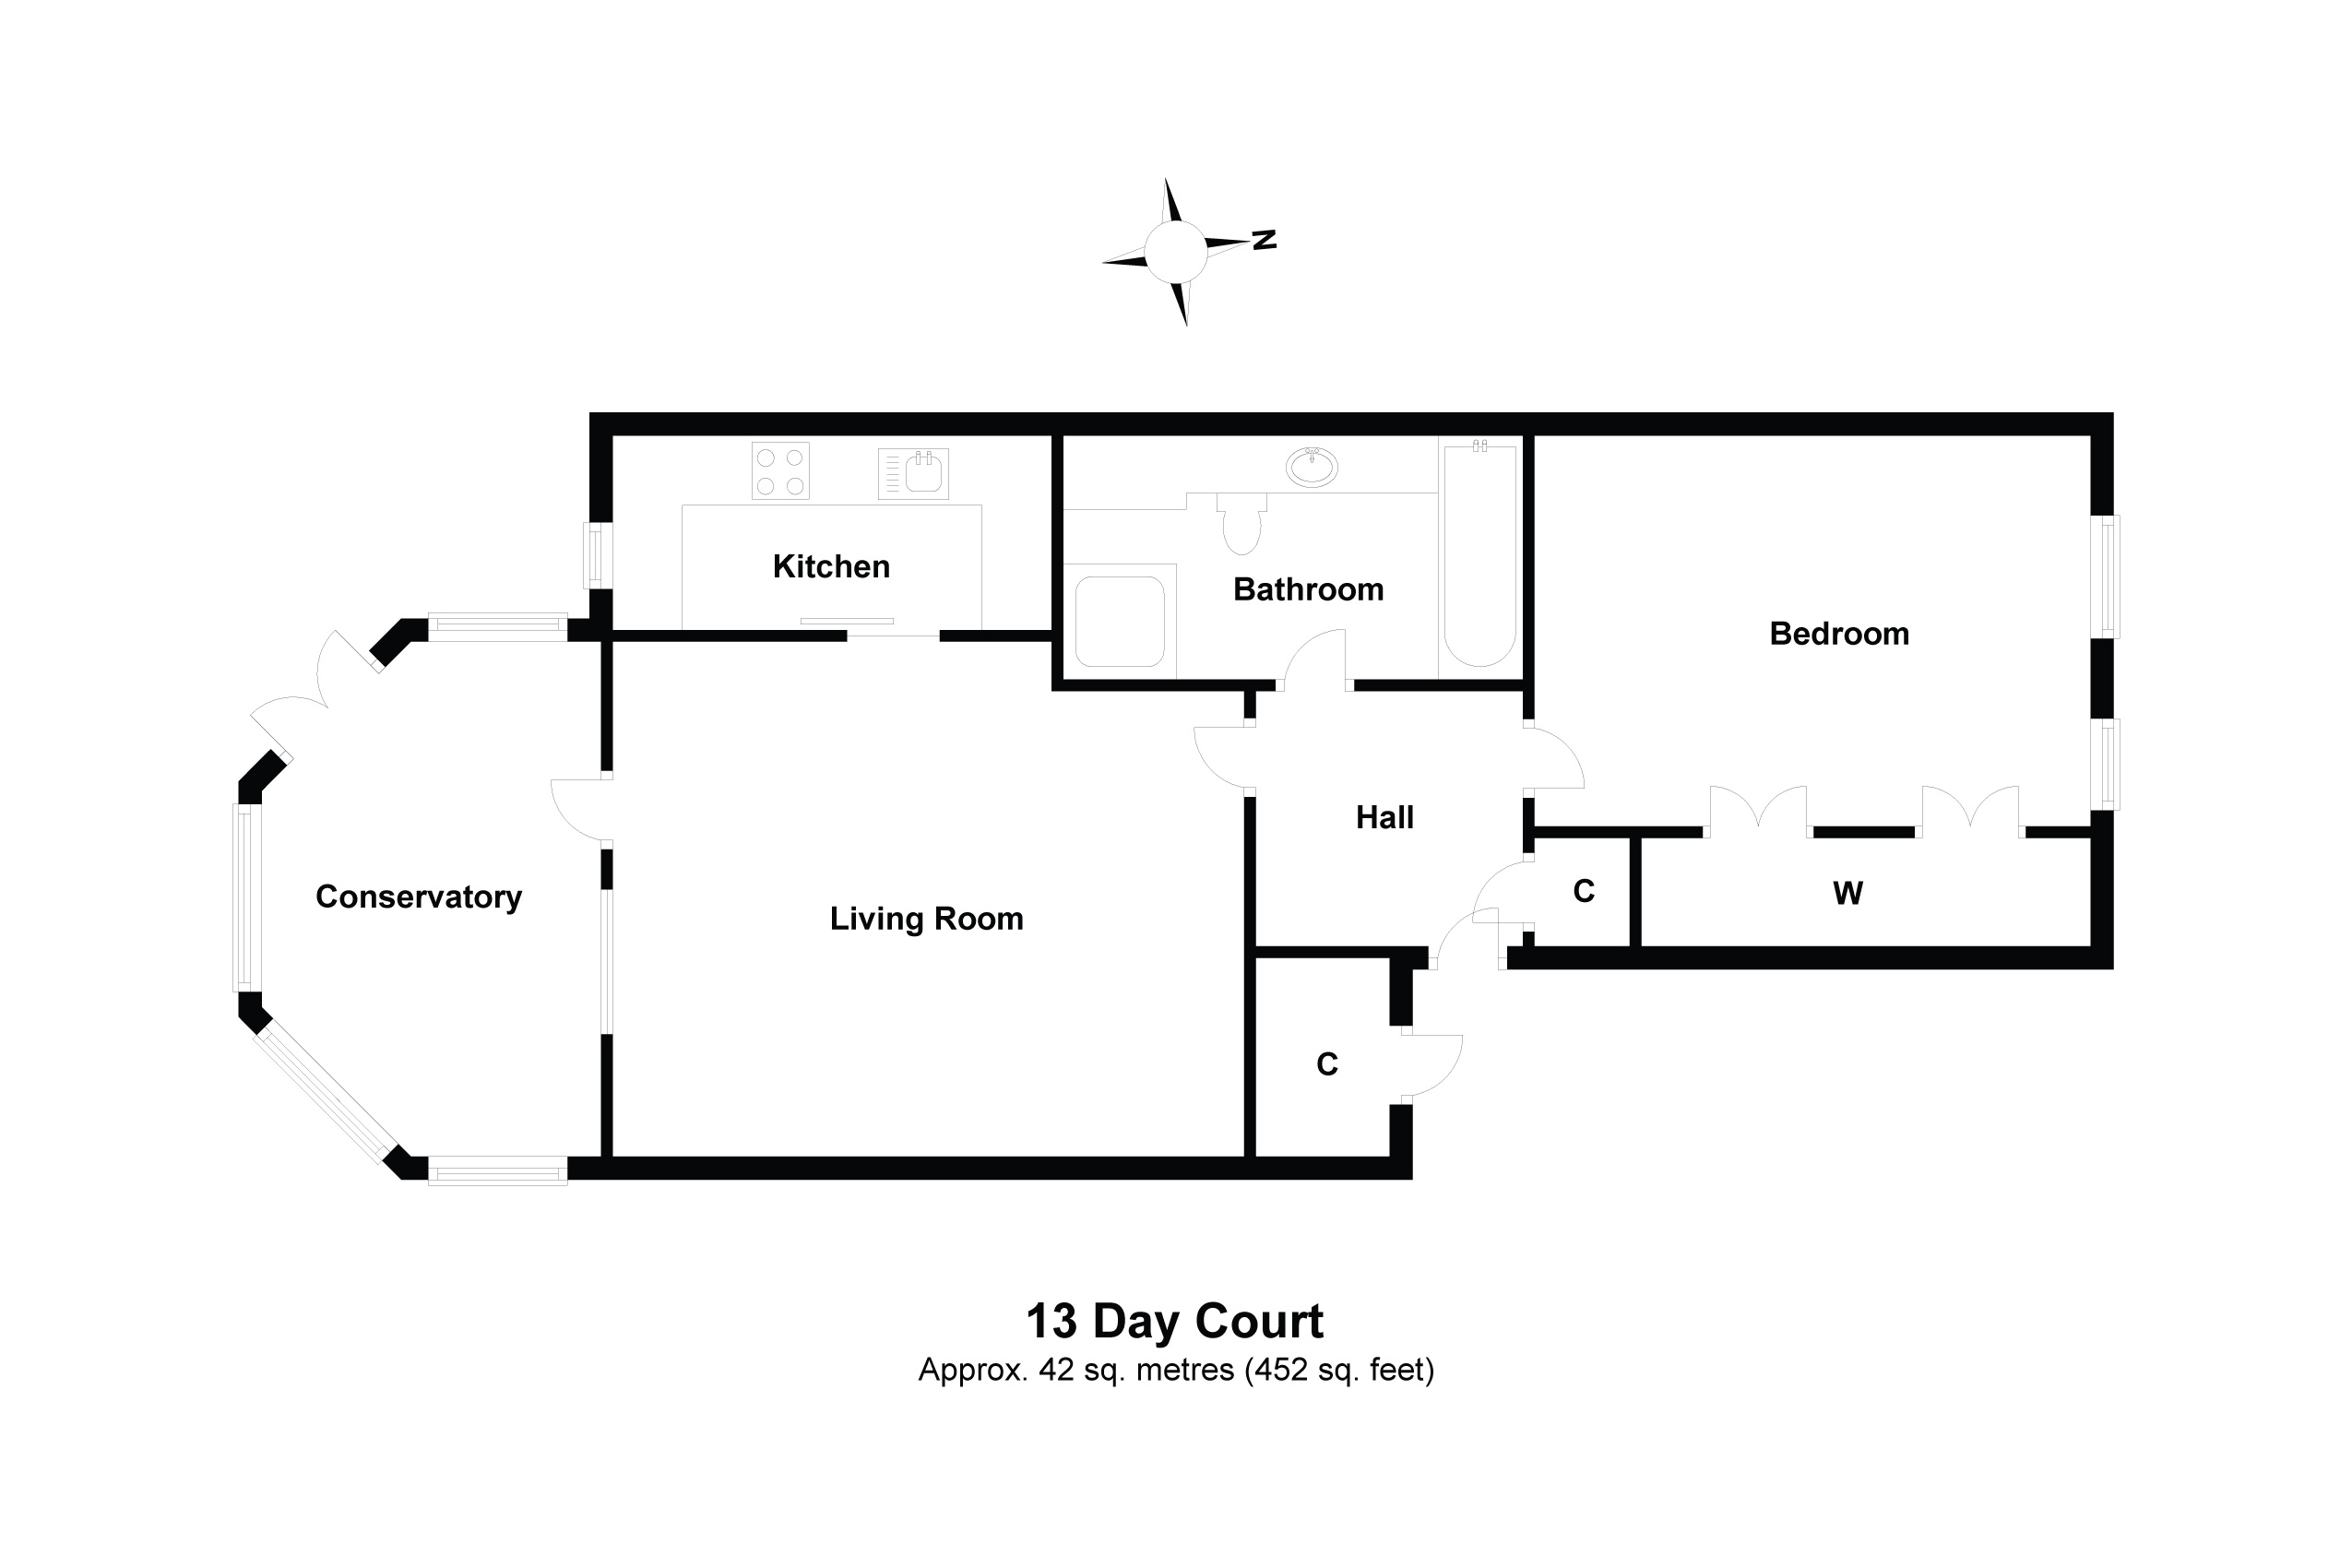 13 Day Court Floorplan